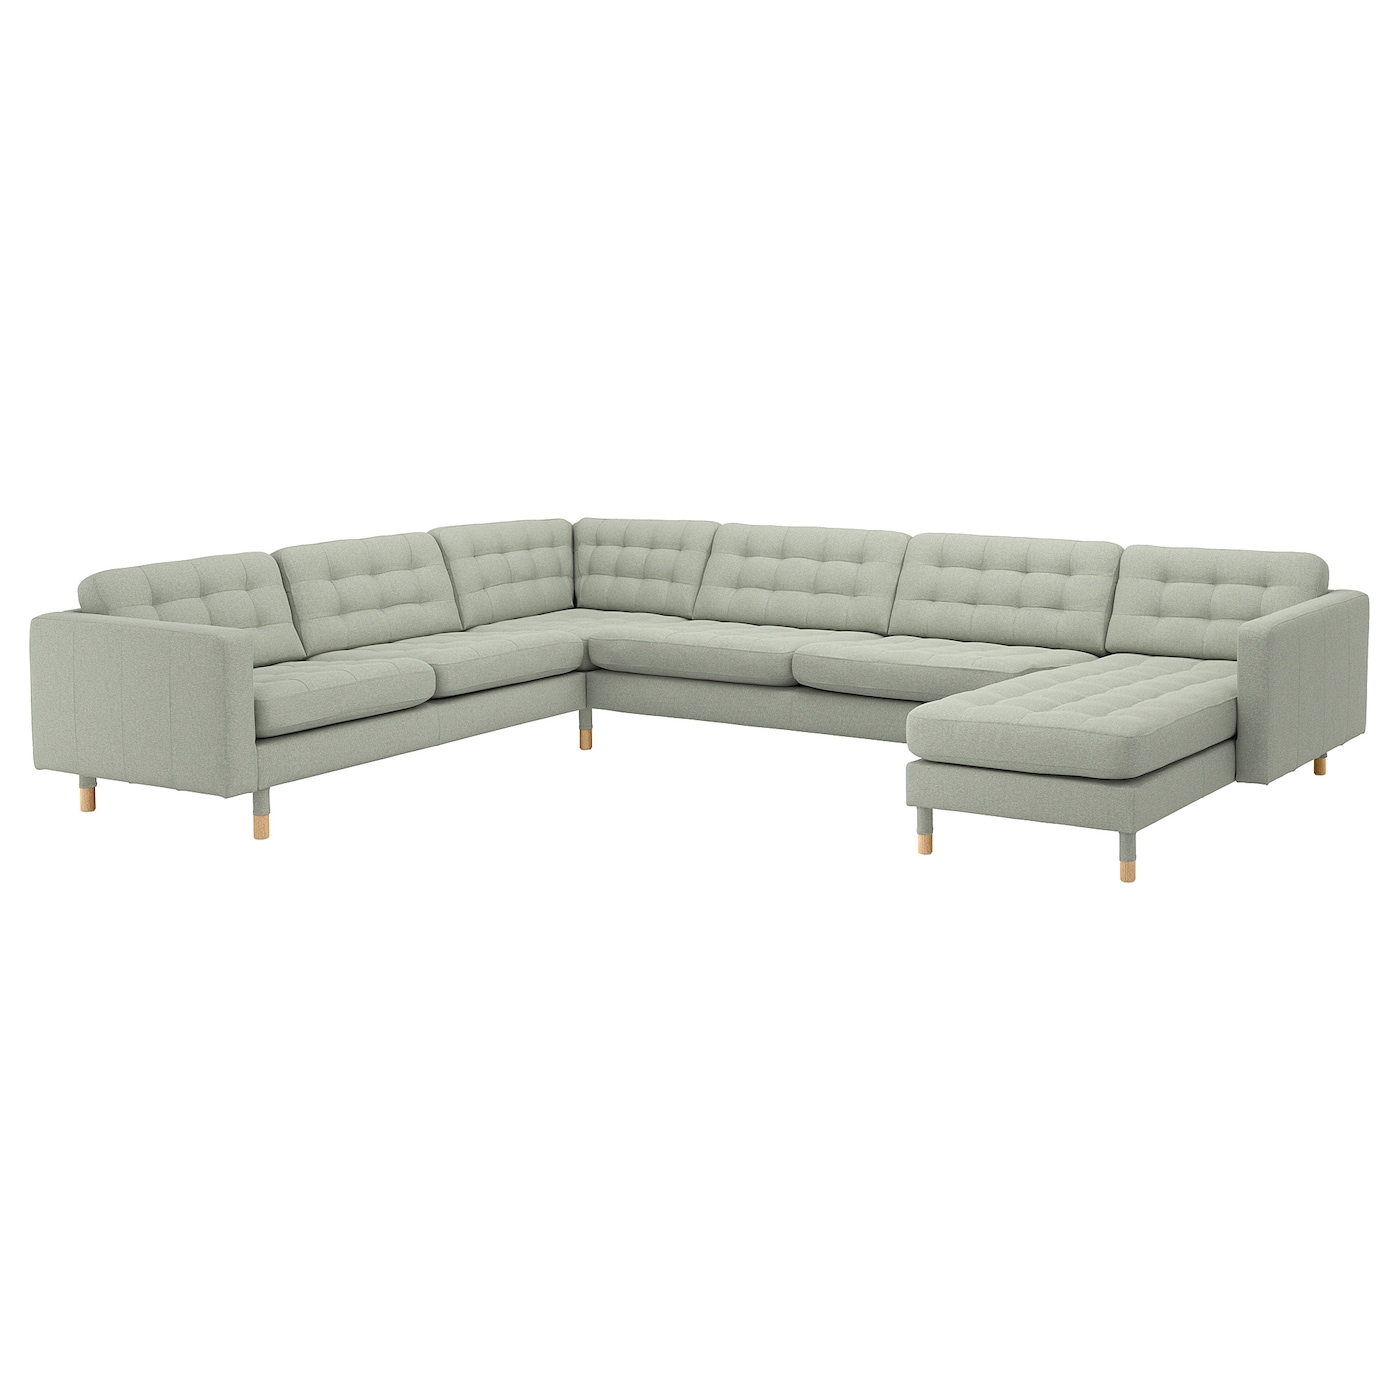 free try out of hybride sofa from ligne roset in 3d, vr and ar